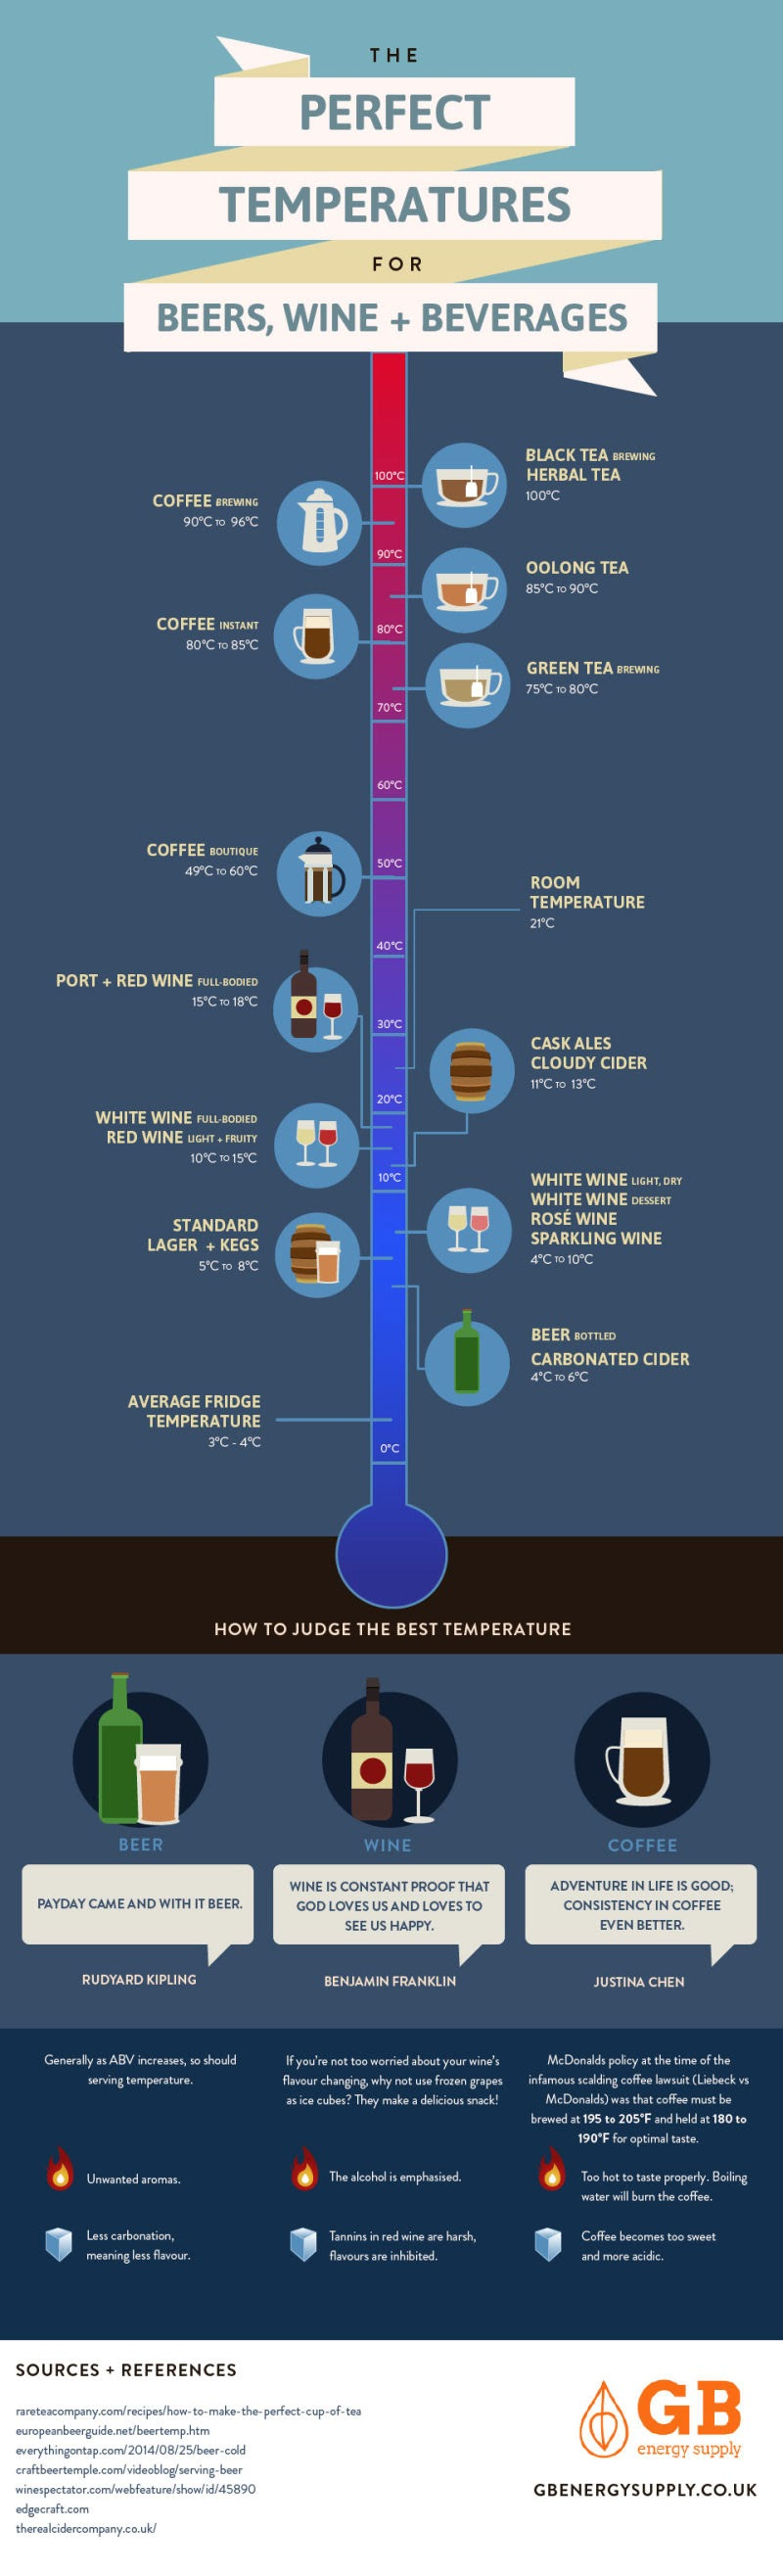 The Perfect Temperatures for Beer, Wine, and Beverages